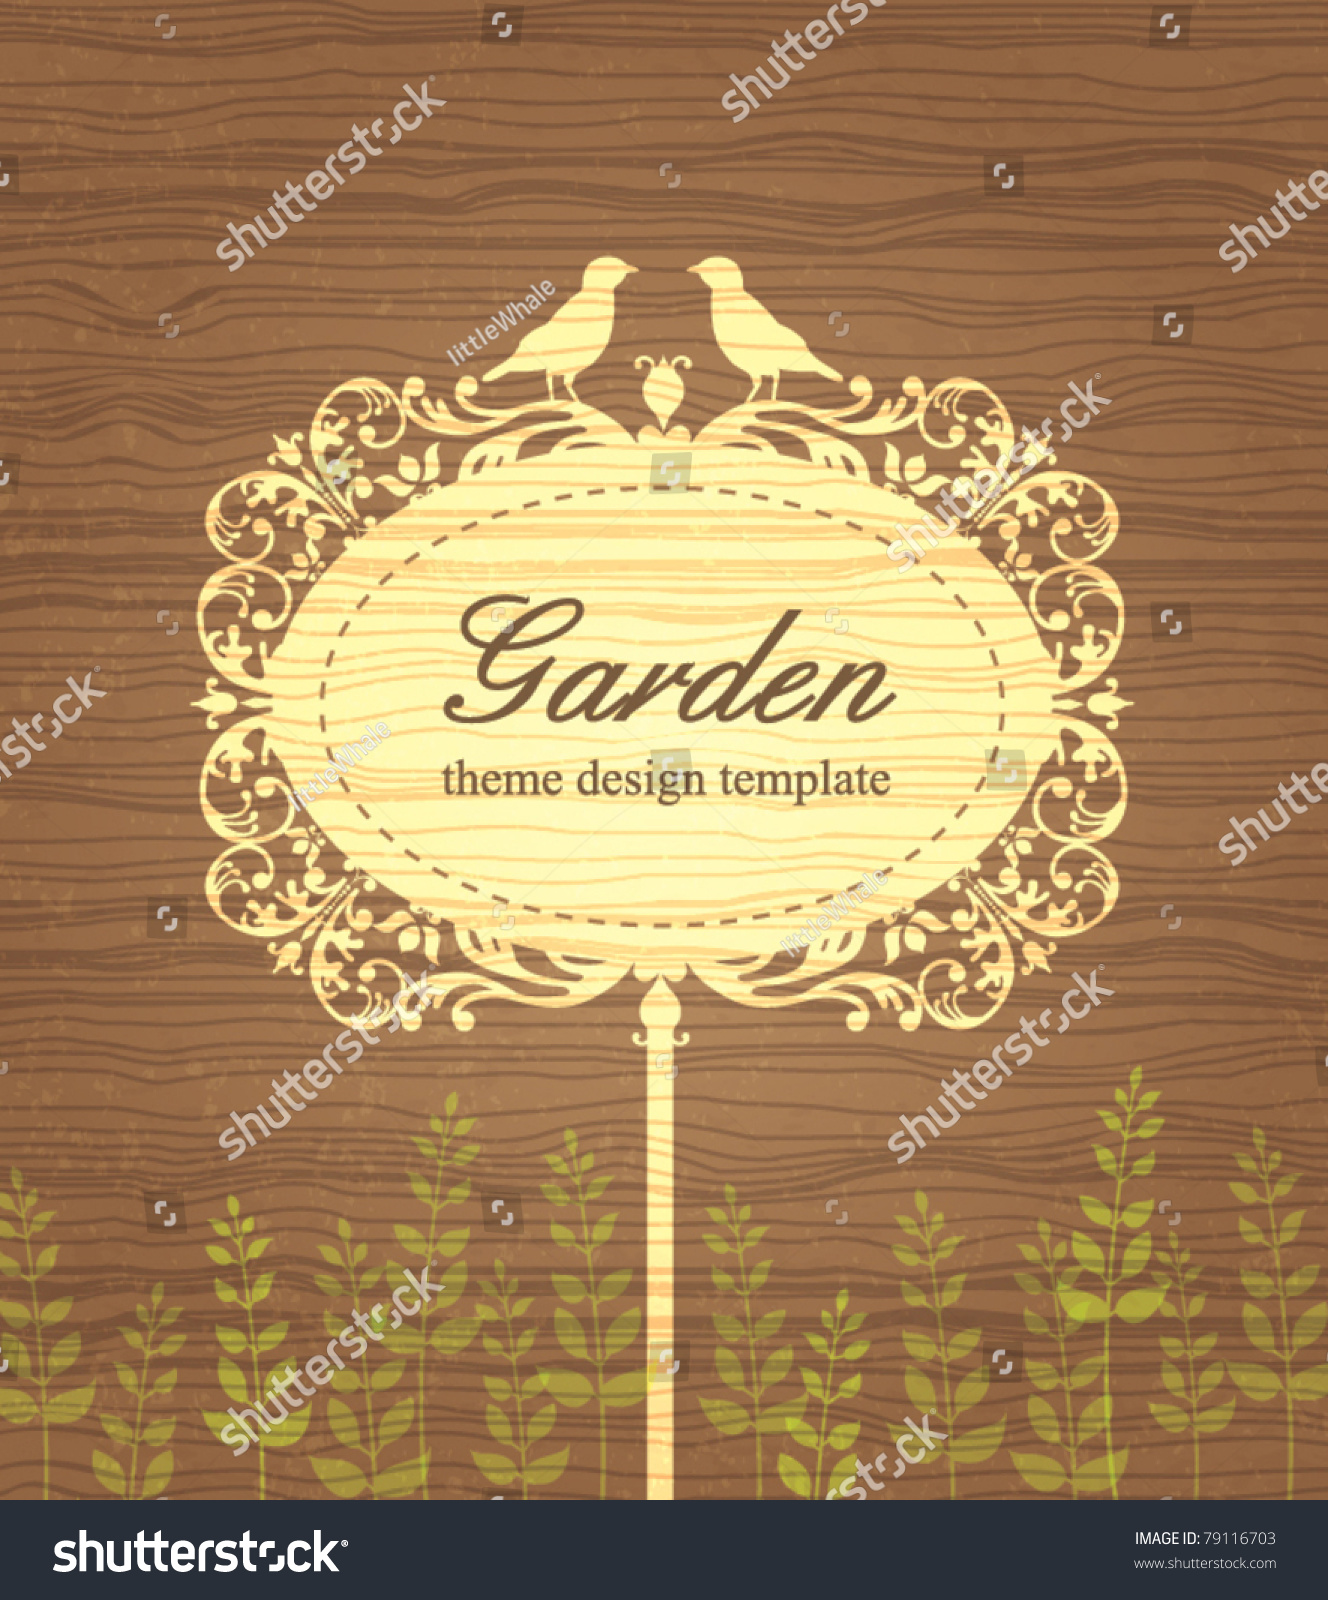 Garden Theme Design Template Vintage Wood Stock Vector (Royalty Free ...